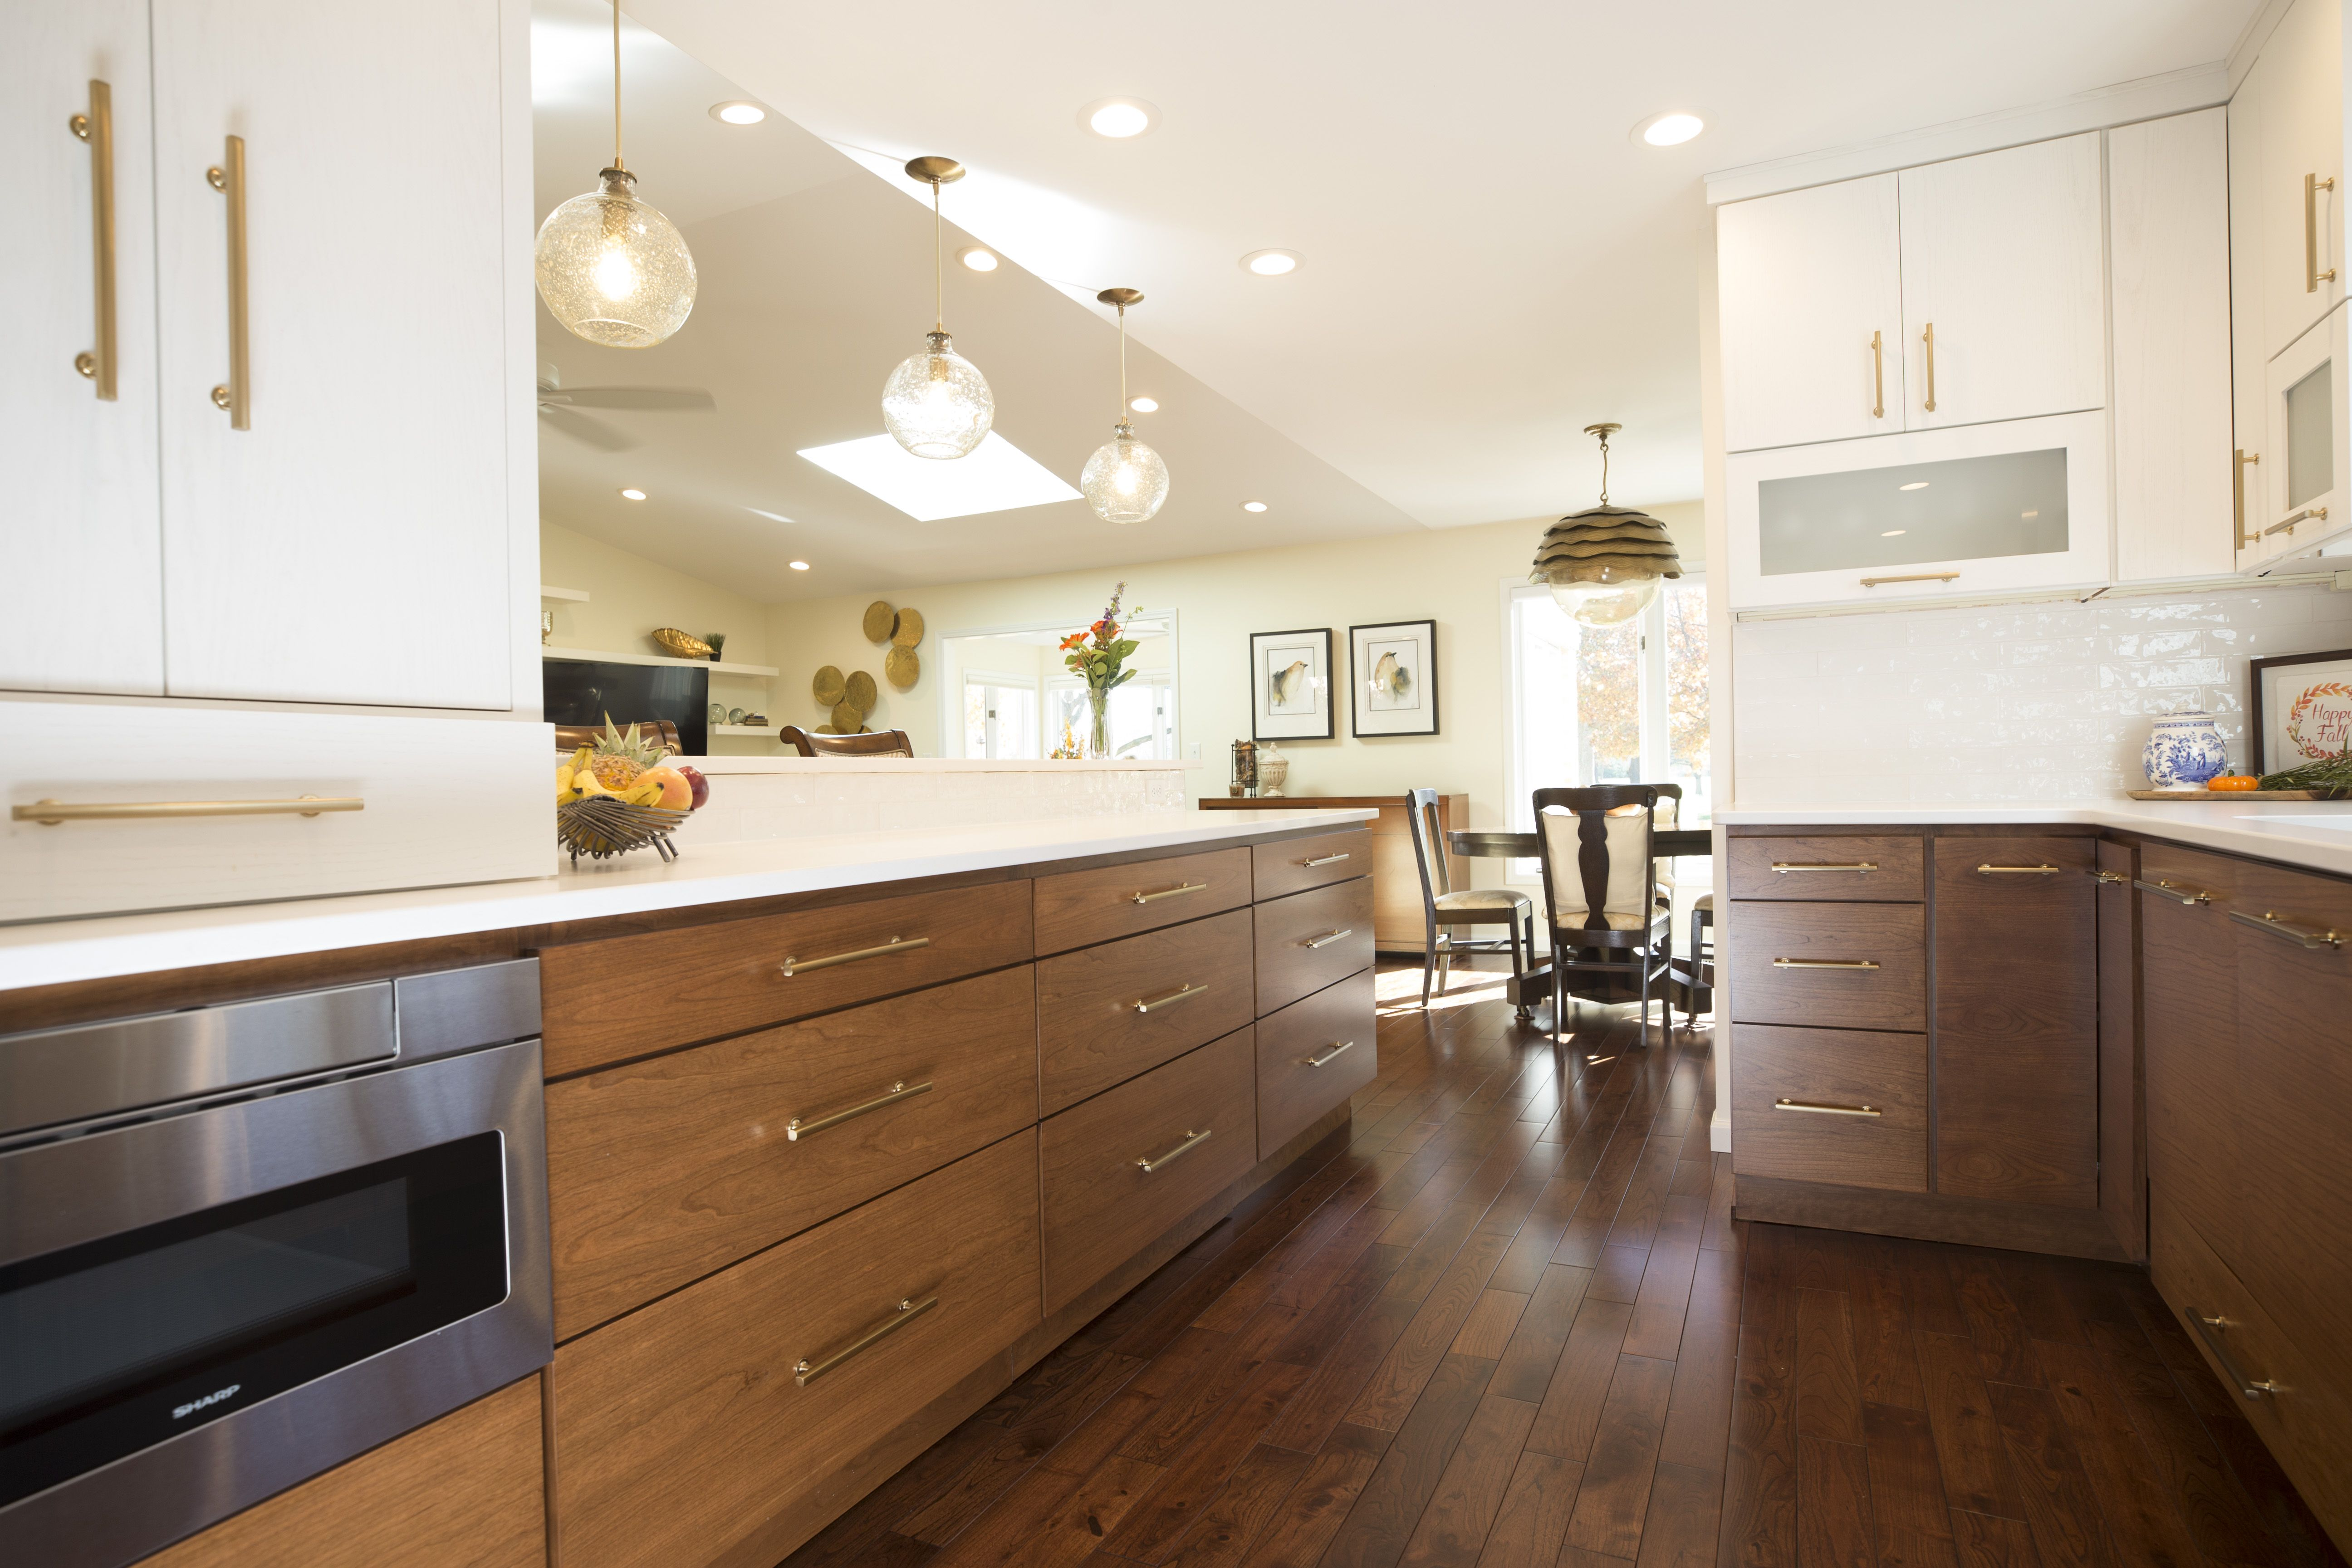 Horizontal Grain Cherry Cabinet Doors With Painted Wall Cabinets Horizontal Walls With Lift And St Contempory Kitchen Kitchen Cabinets Cherry Cabinets Kitchen